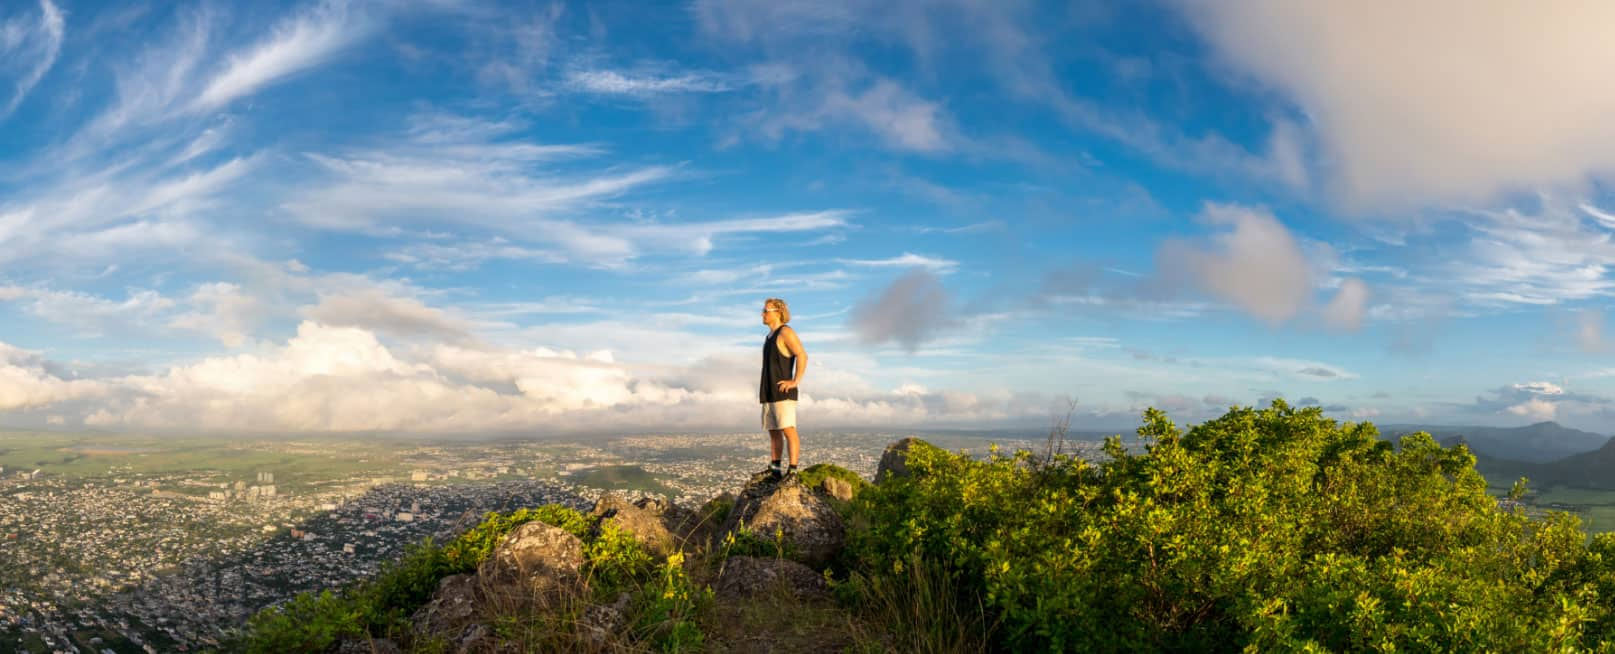 Immigrate or Emigrate to Mauritius   Explore Leisure in Nature Mountain Hiking